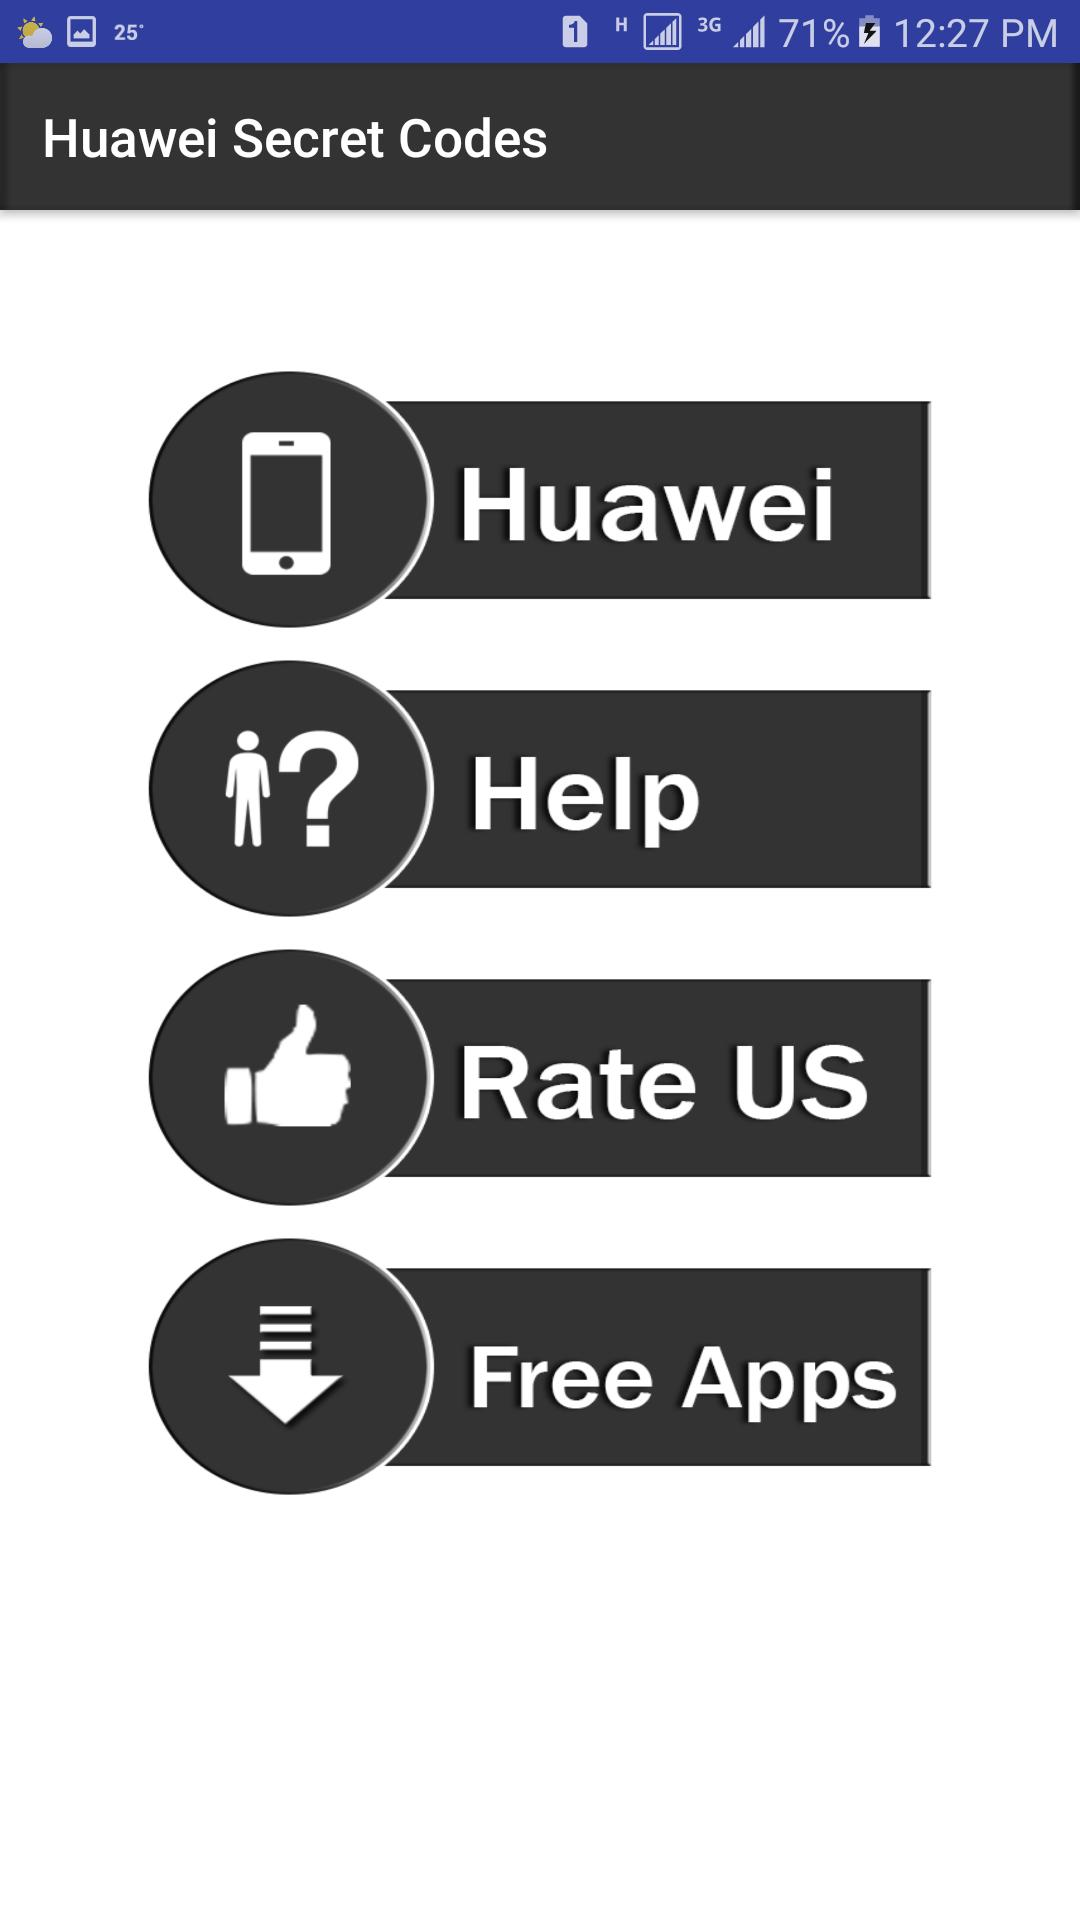 Secret Codes of Huawe for Android - APK Download